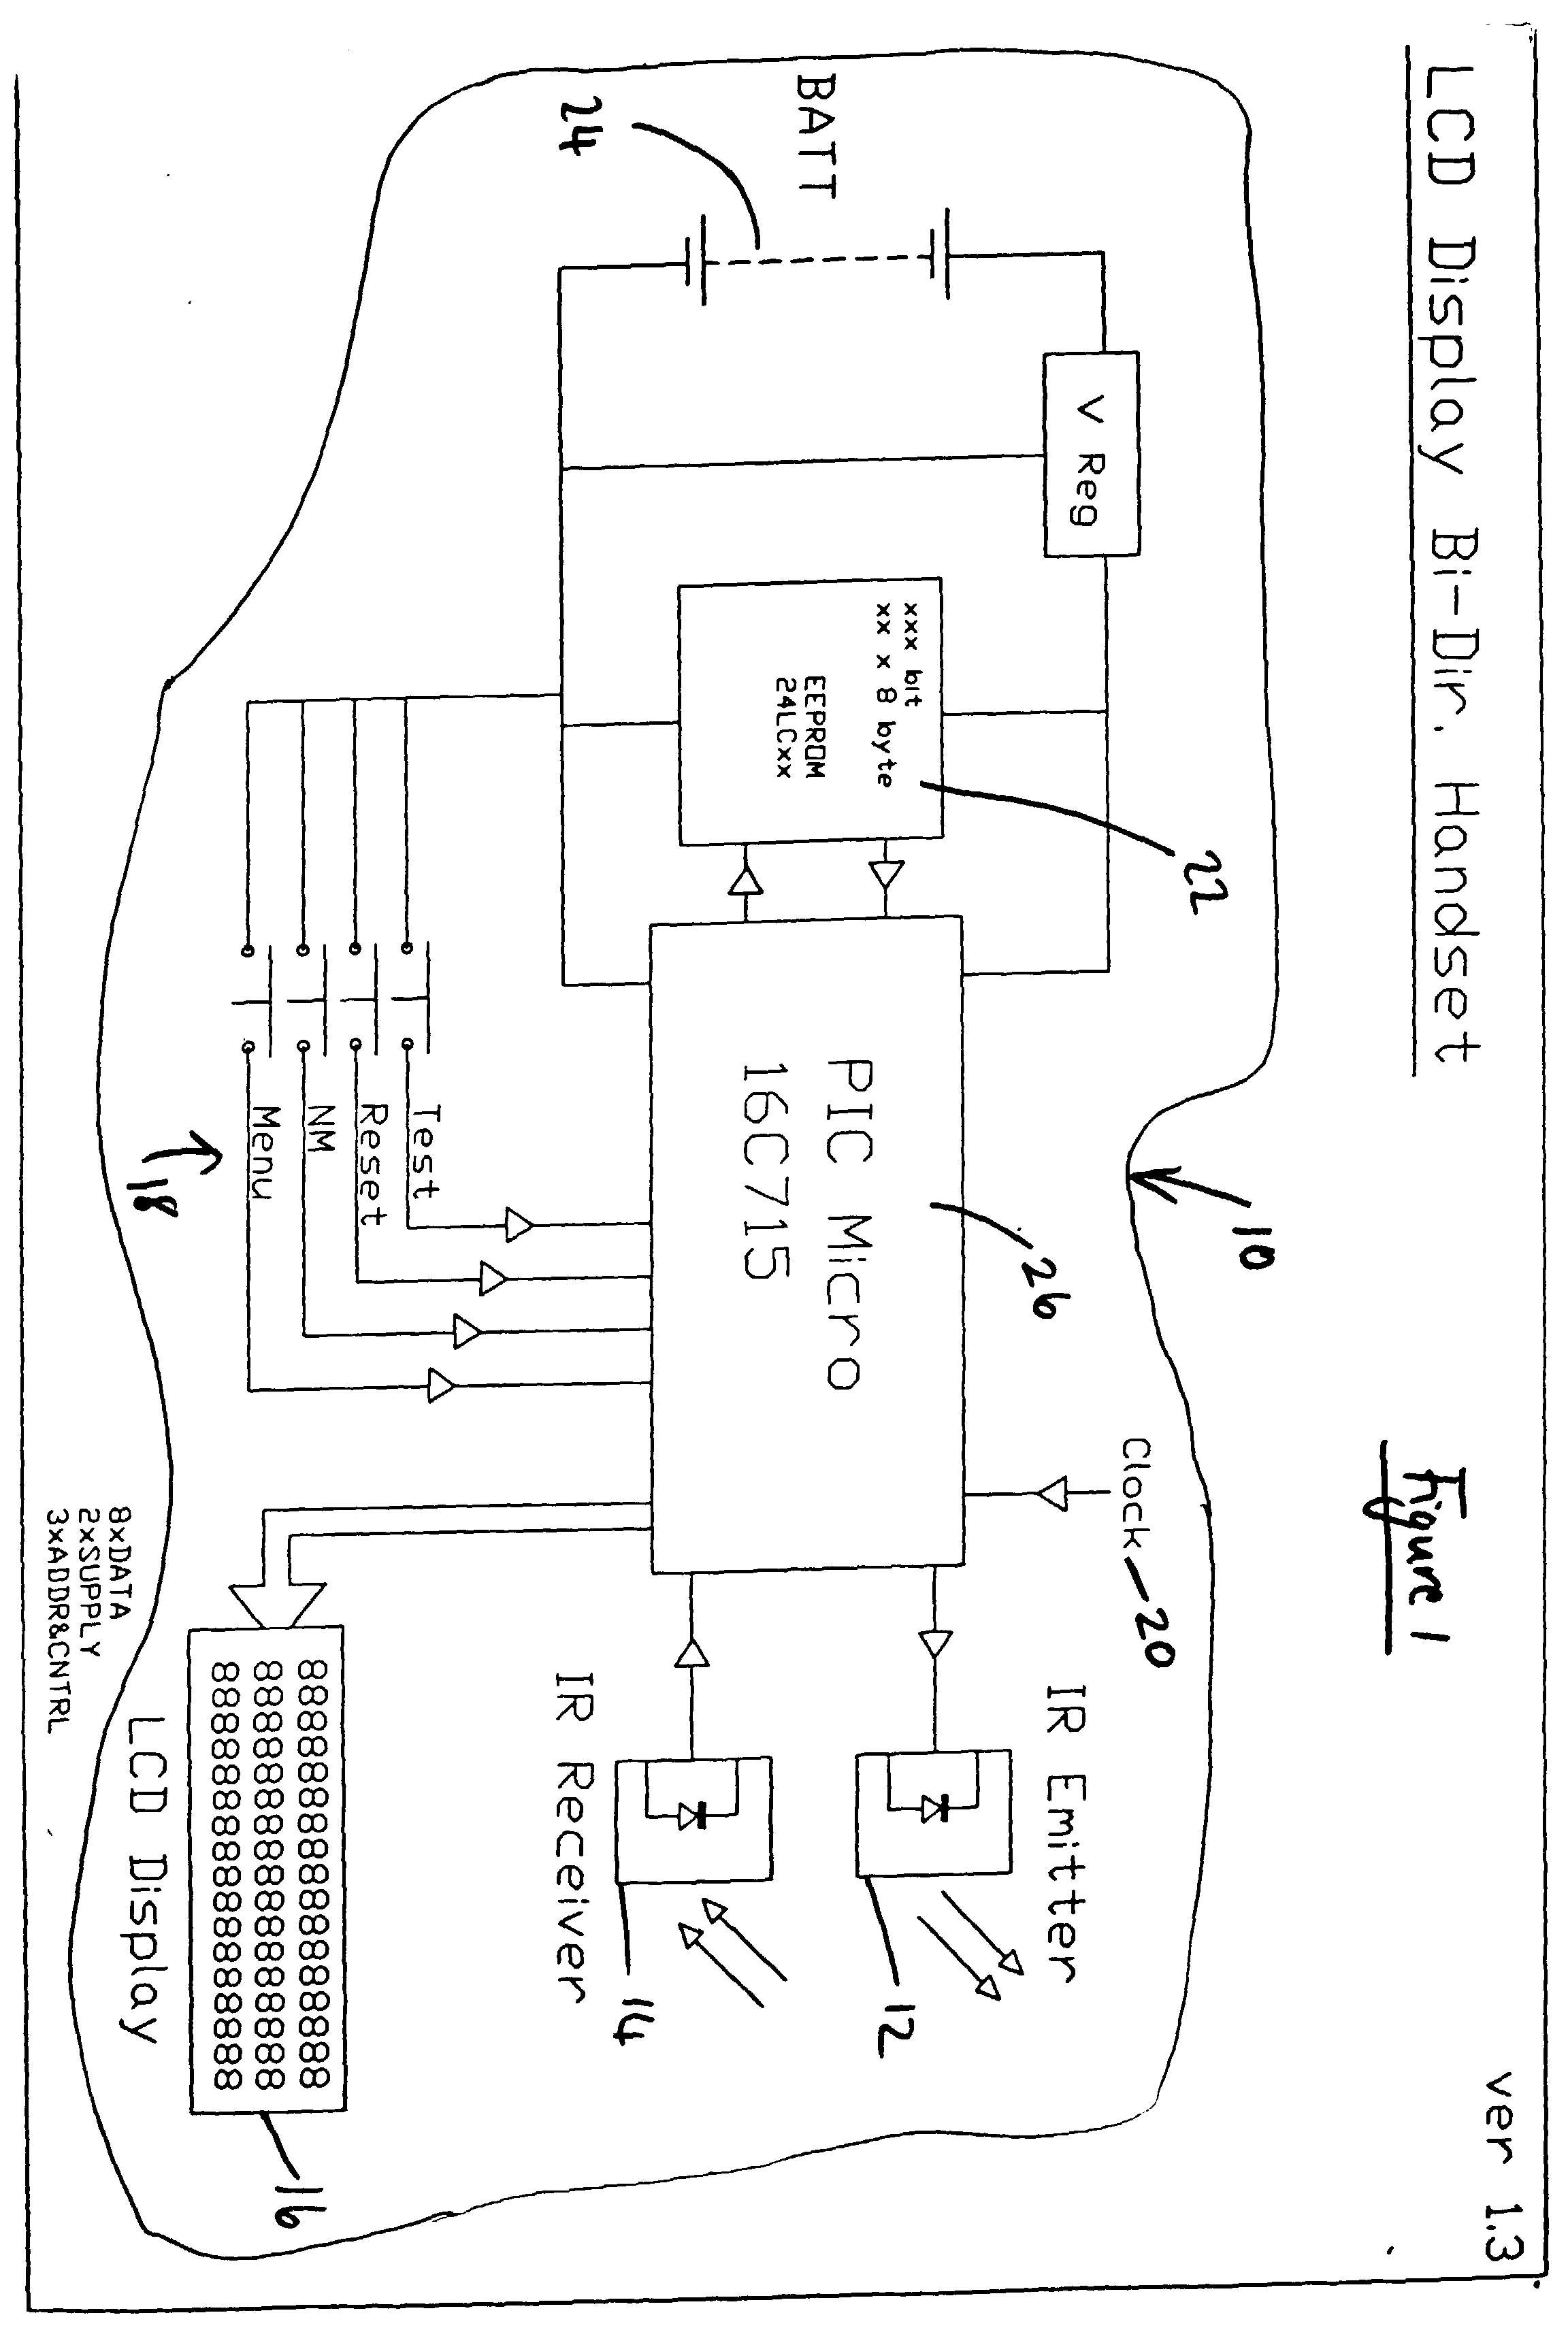 00160001 patent ep1035628a1 improvements relating to emergency lighting emergency exit light wiring diagram at mifinder.co